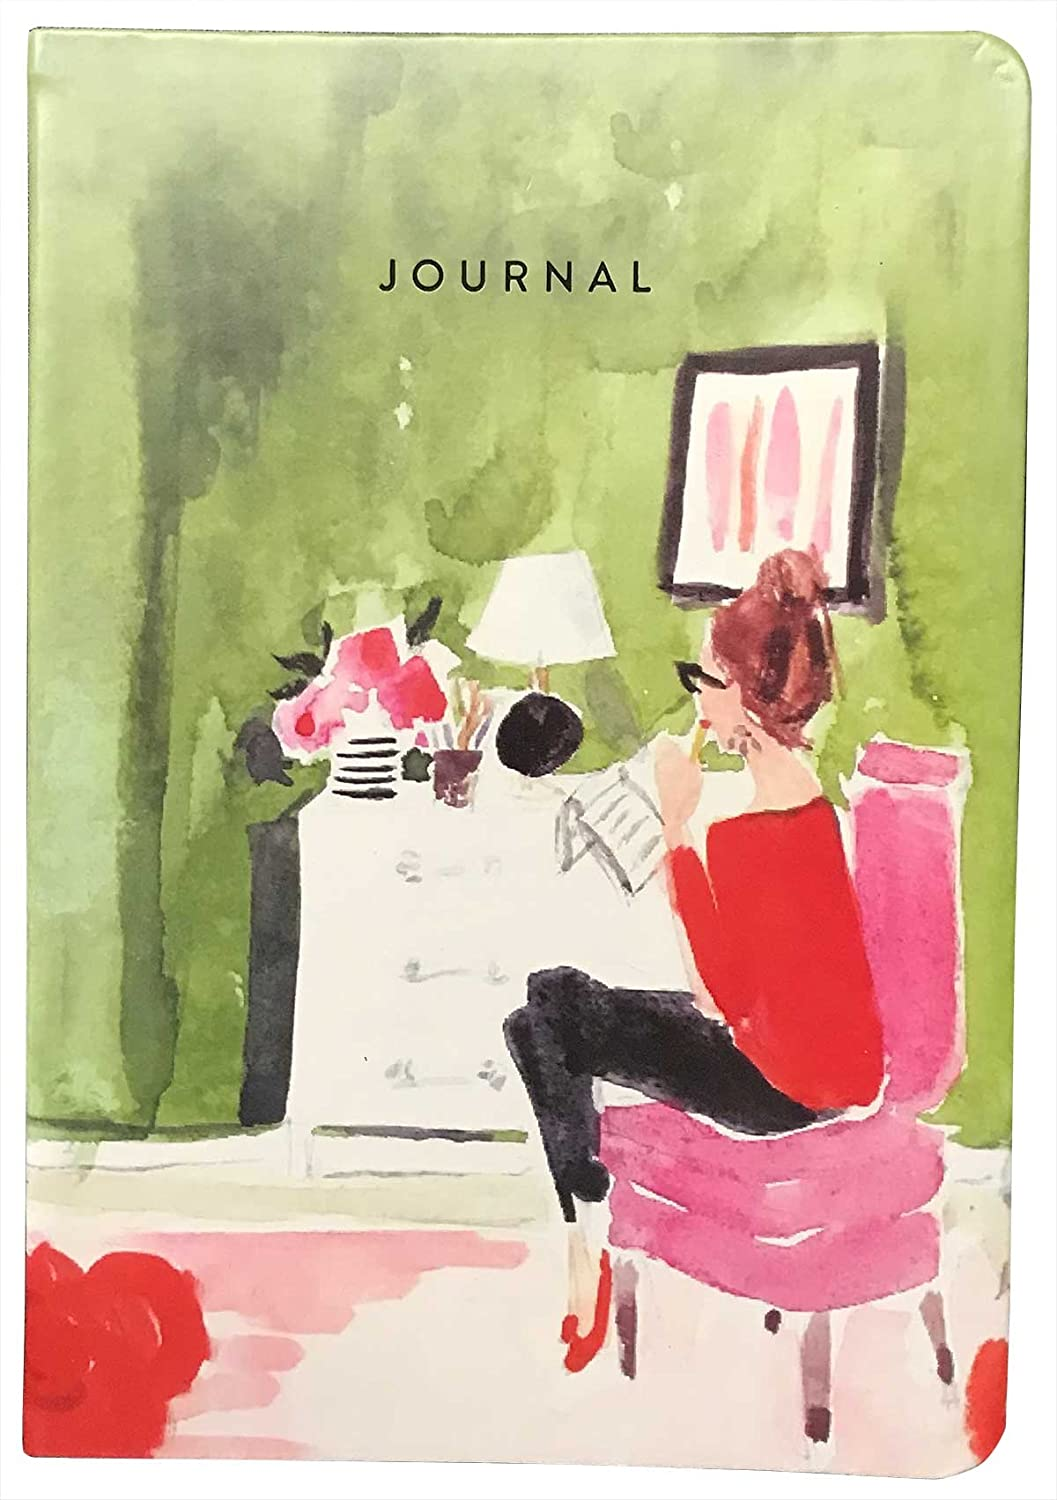 Eccolo 6 x 8 Inches Style Journal in Faux Leather (Breakfast Journal)